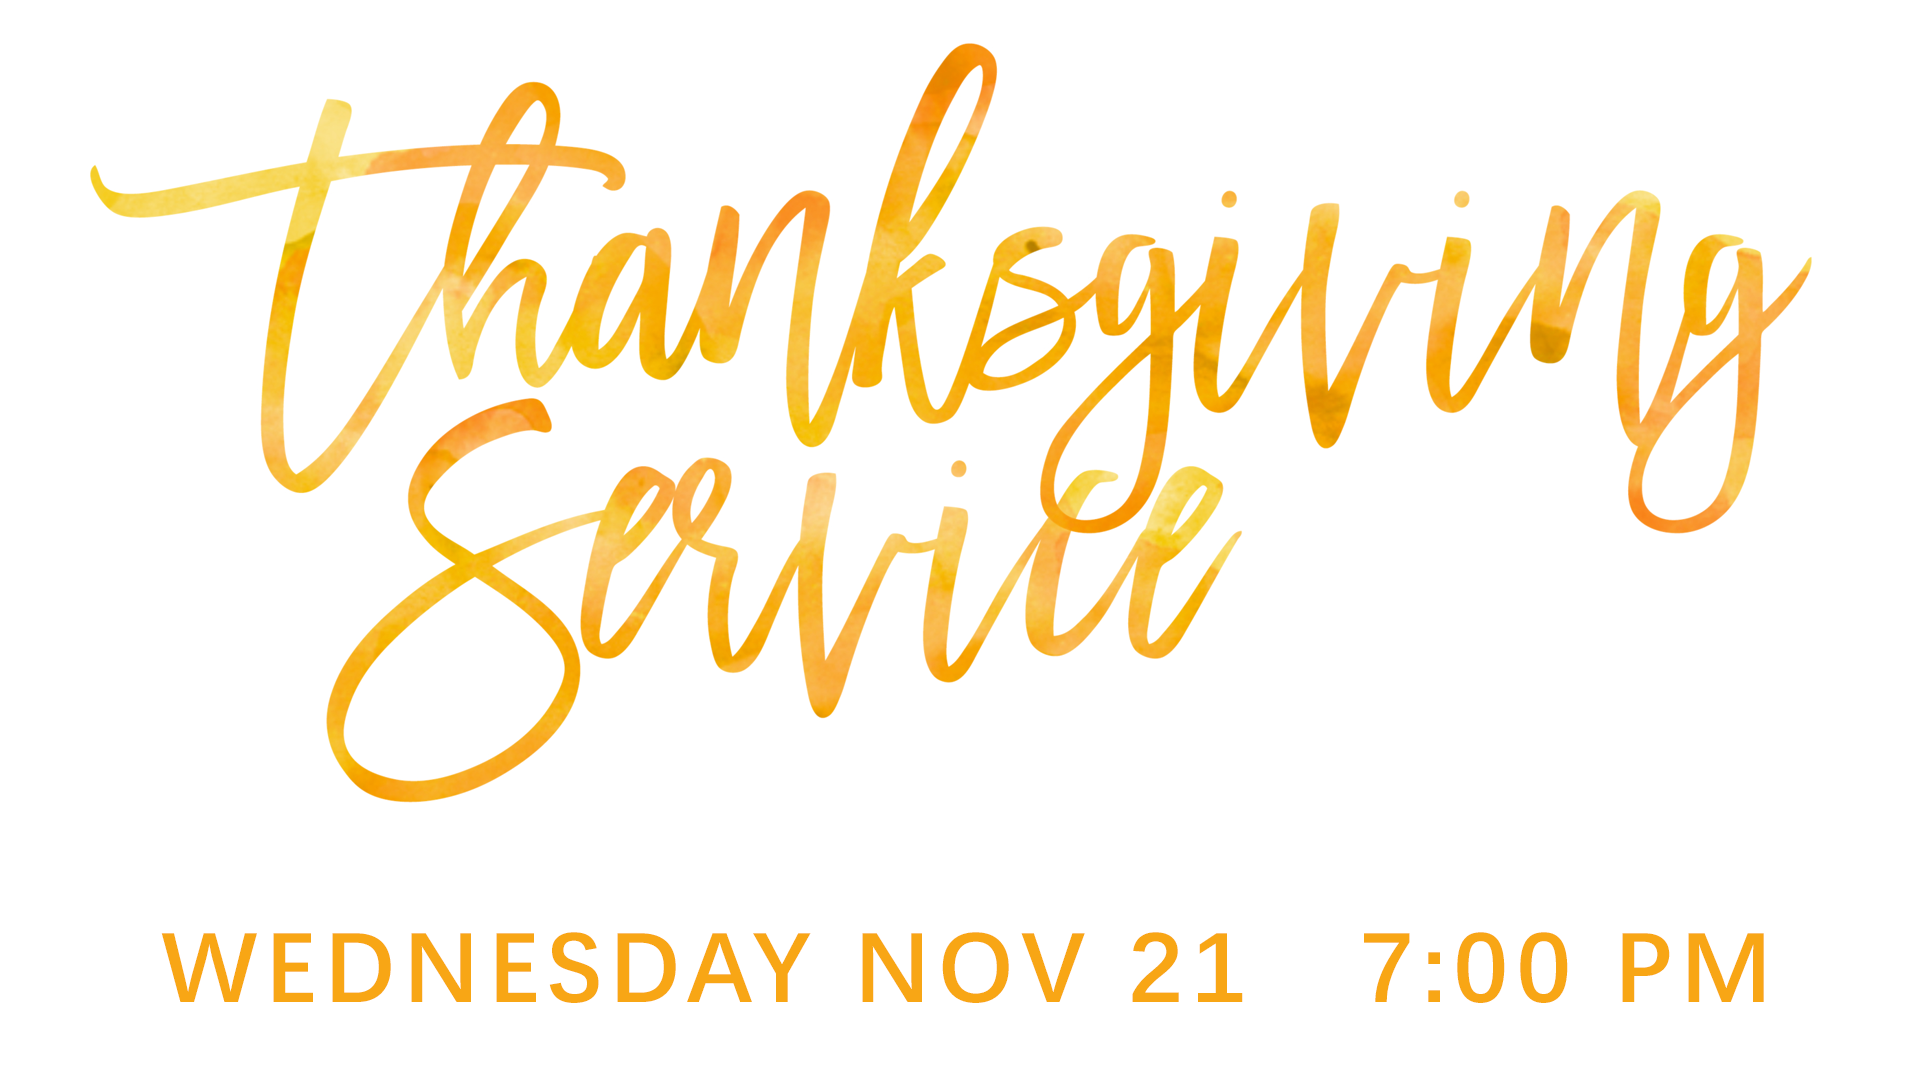 Come join us Wednesday November 21st in the Sanctuary as we thank God for all He has done! Dessert will follow the service.